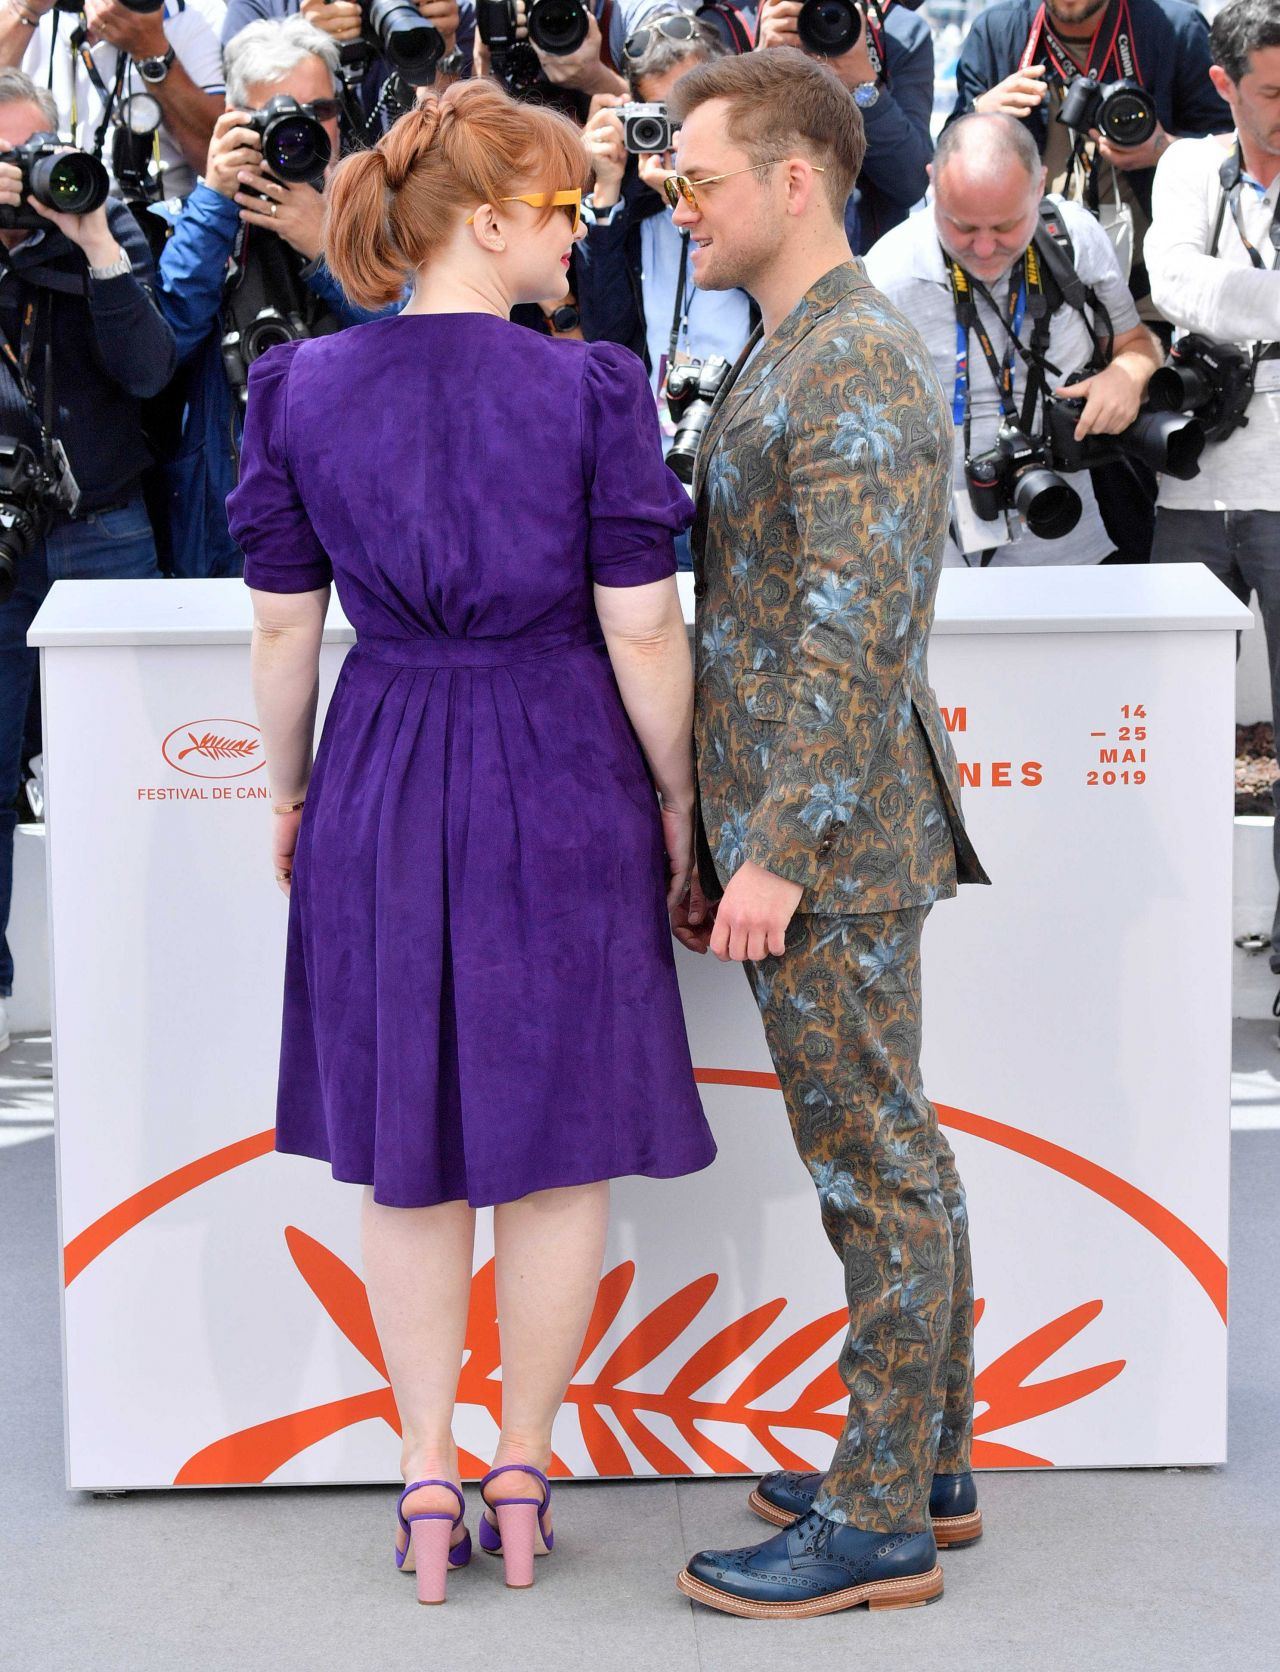 https://celebmafia.com/wp-content/uploads/2019/05/bryce-dallas-howard-rocketman-photocall-at-cannes-film-festival-3.jpg